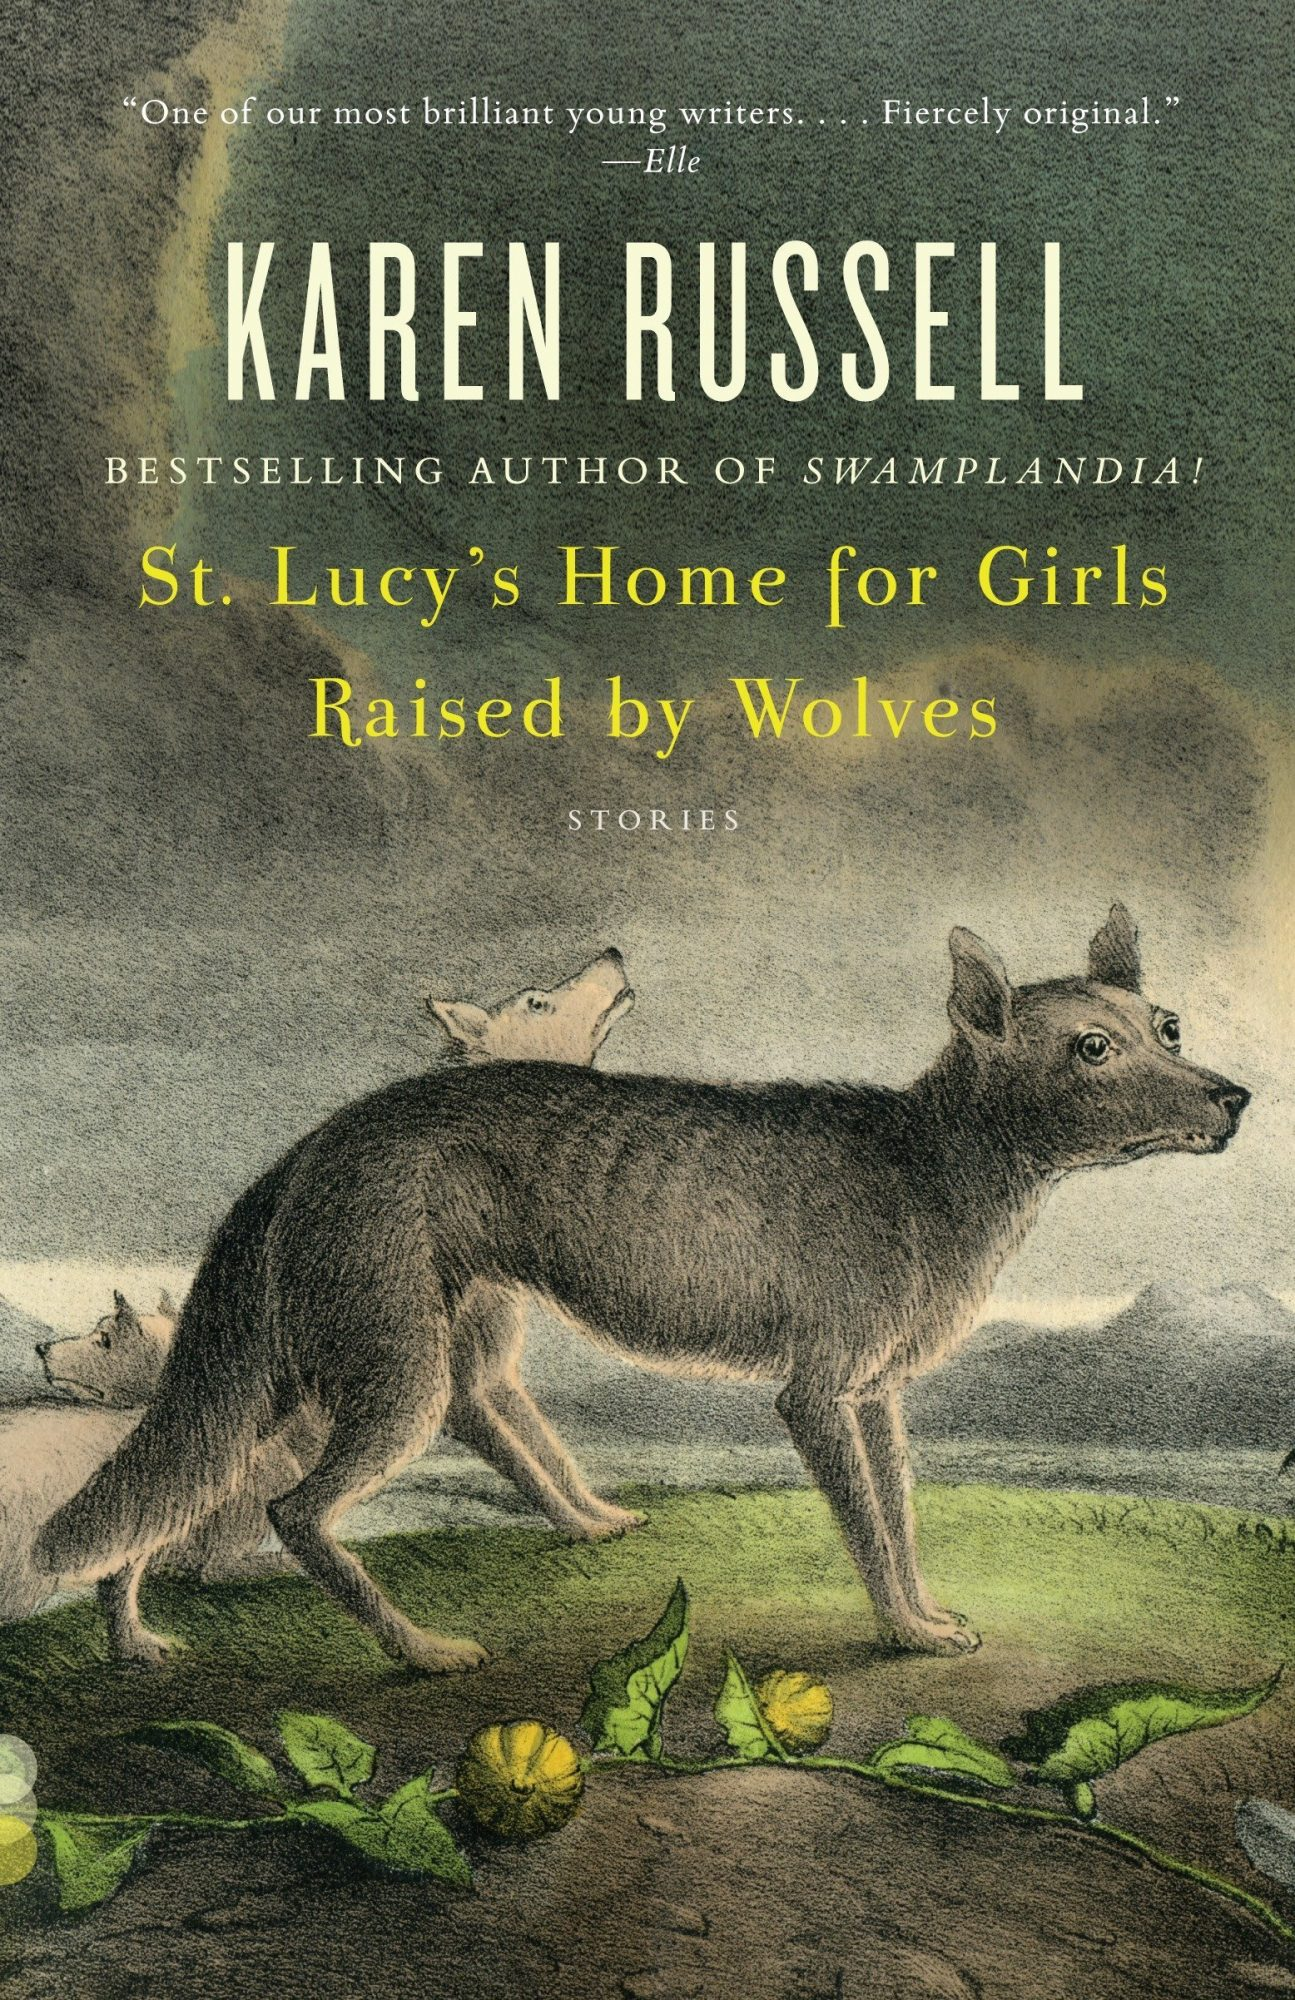 St. Lucy's Home for Girls Raised by Wolves: Stories by Karen Russell